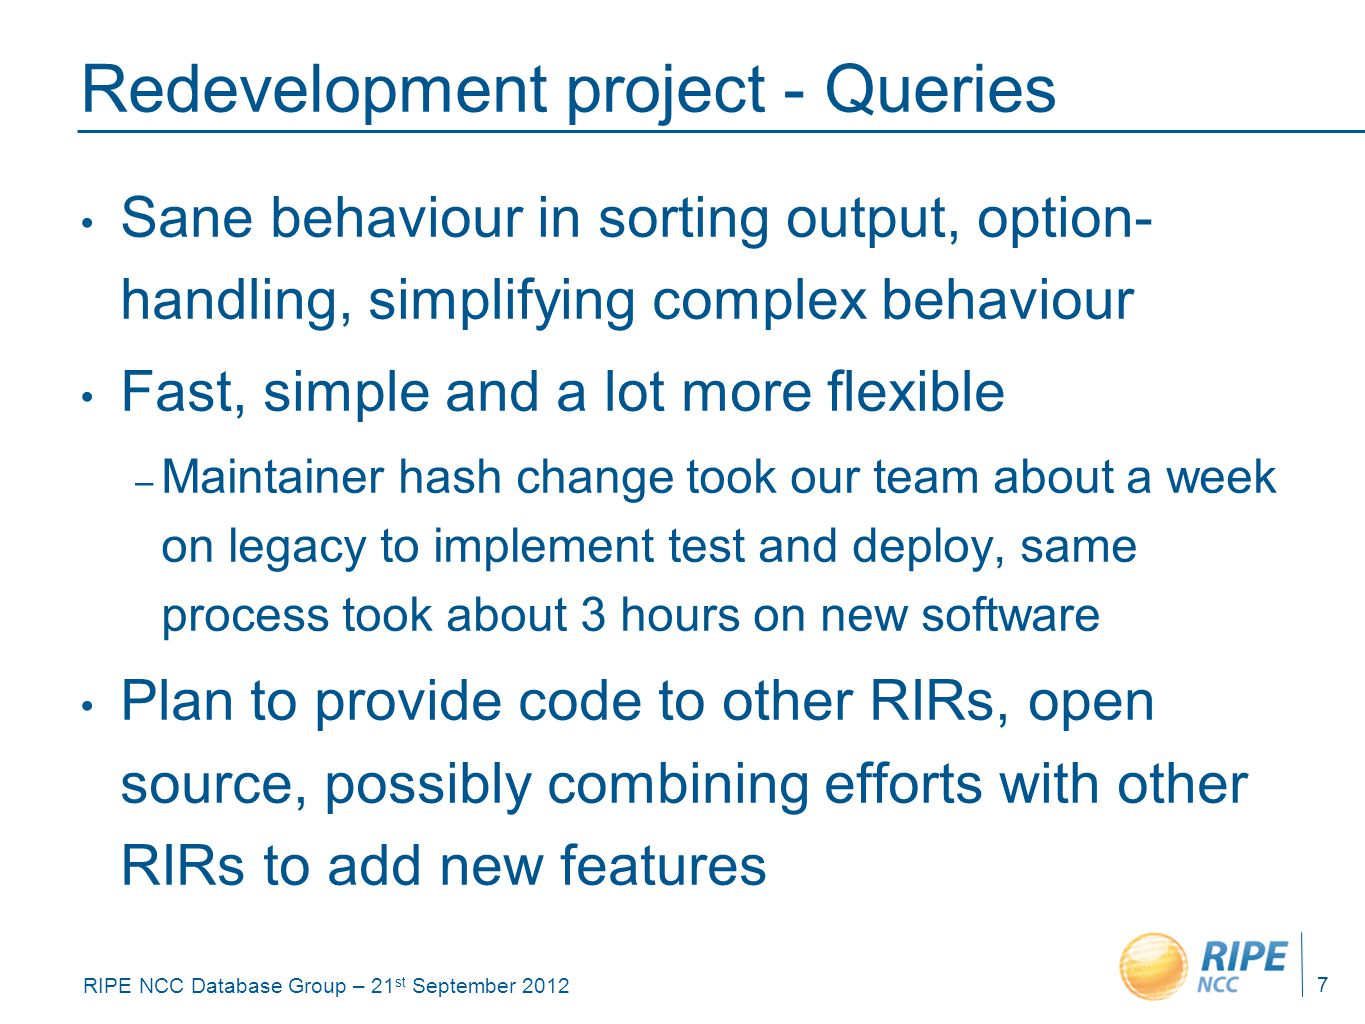 RIPE NCC Database Group – 21 st September 2012 Redevelopment project - Queries Sane behaviour in sorting output, option- handling, simplifying complex behaviour Fast, simple and a lot more flexible – Maintainer hash change took our team about a week on legacy to implement test and deploy, same process took about 3 hours on new software Plan to provide code to other RIRs, open source, possibly combining efforts with other RIRs to add new features 7